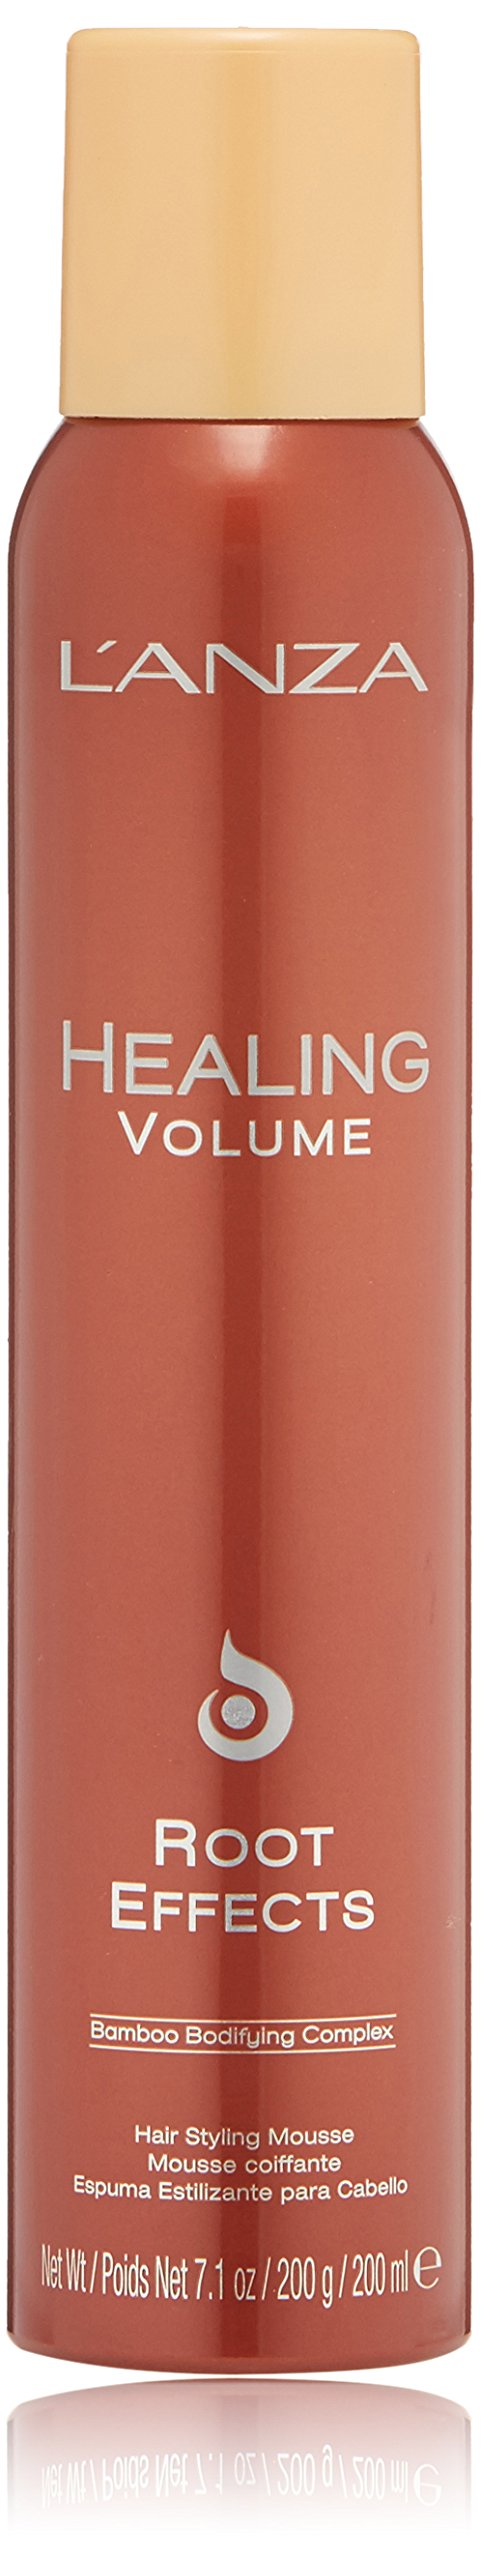 L'ANZA Healing Volume Root Effects, 7.1 oz. by L'ANZA